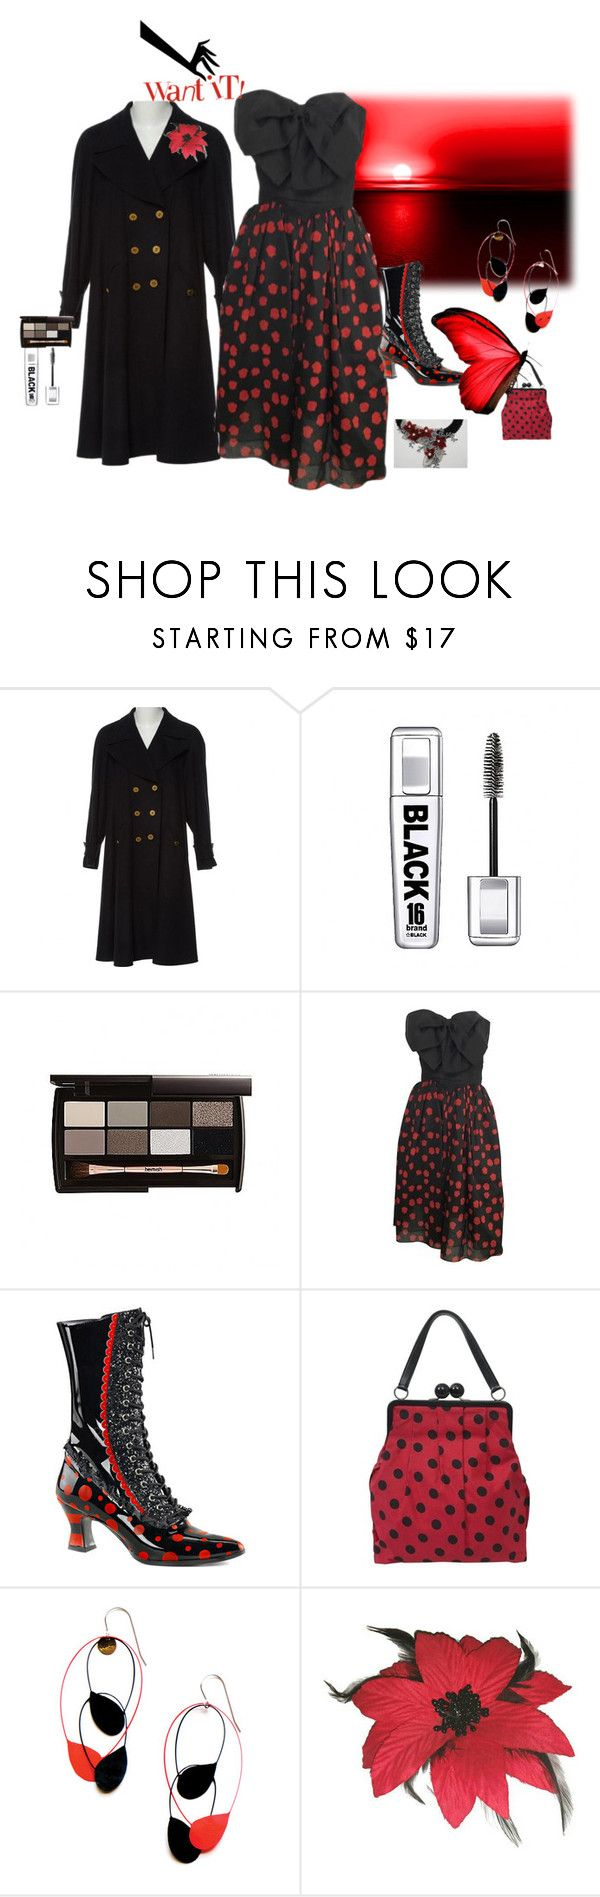 """""""Vintage Bill Blass Dress and Chanel Cashmere Coat"""" by mkdetail ❤ liked on Polyvore featuring Chanel, Bill Blass, Funtasma, Moschino and vintage"""